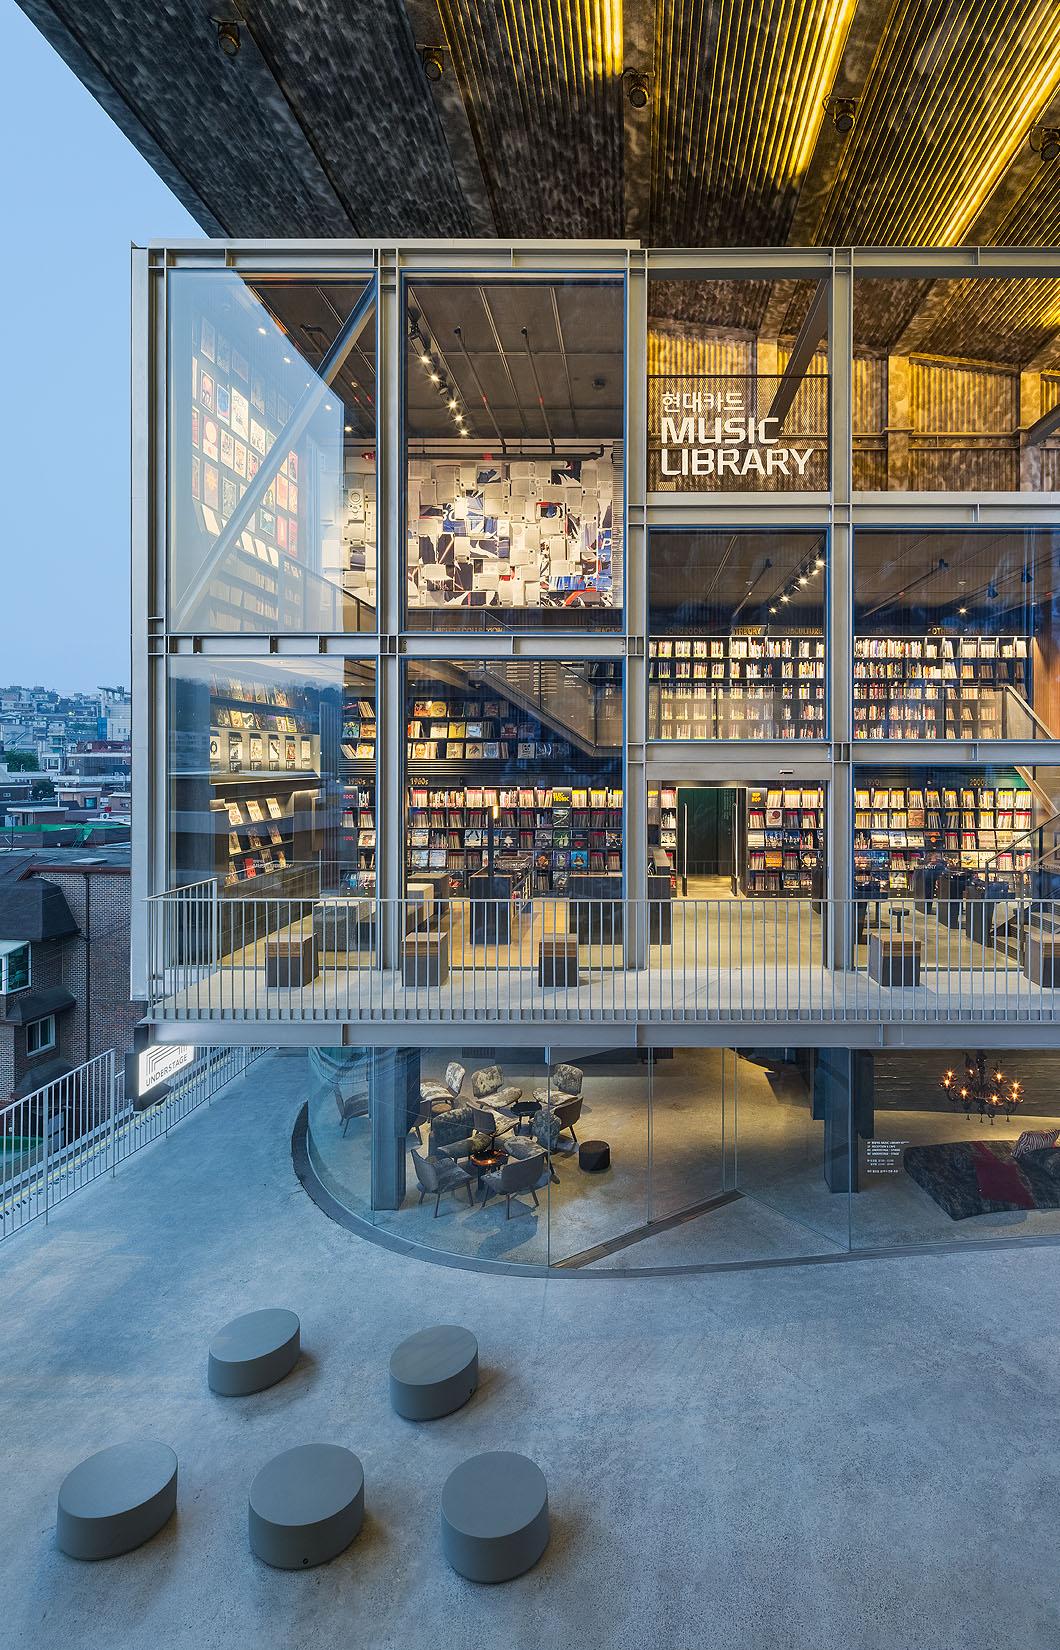 Music library - Seoul